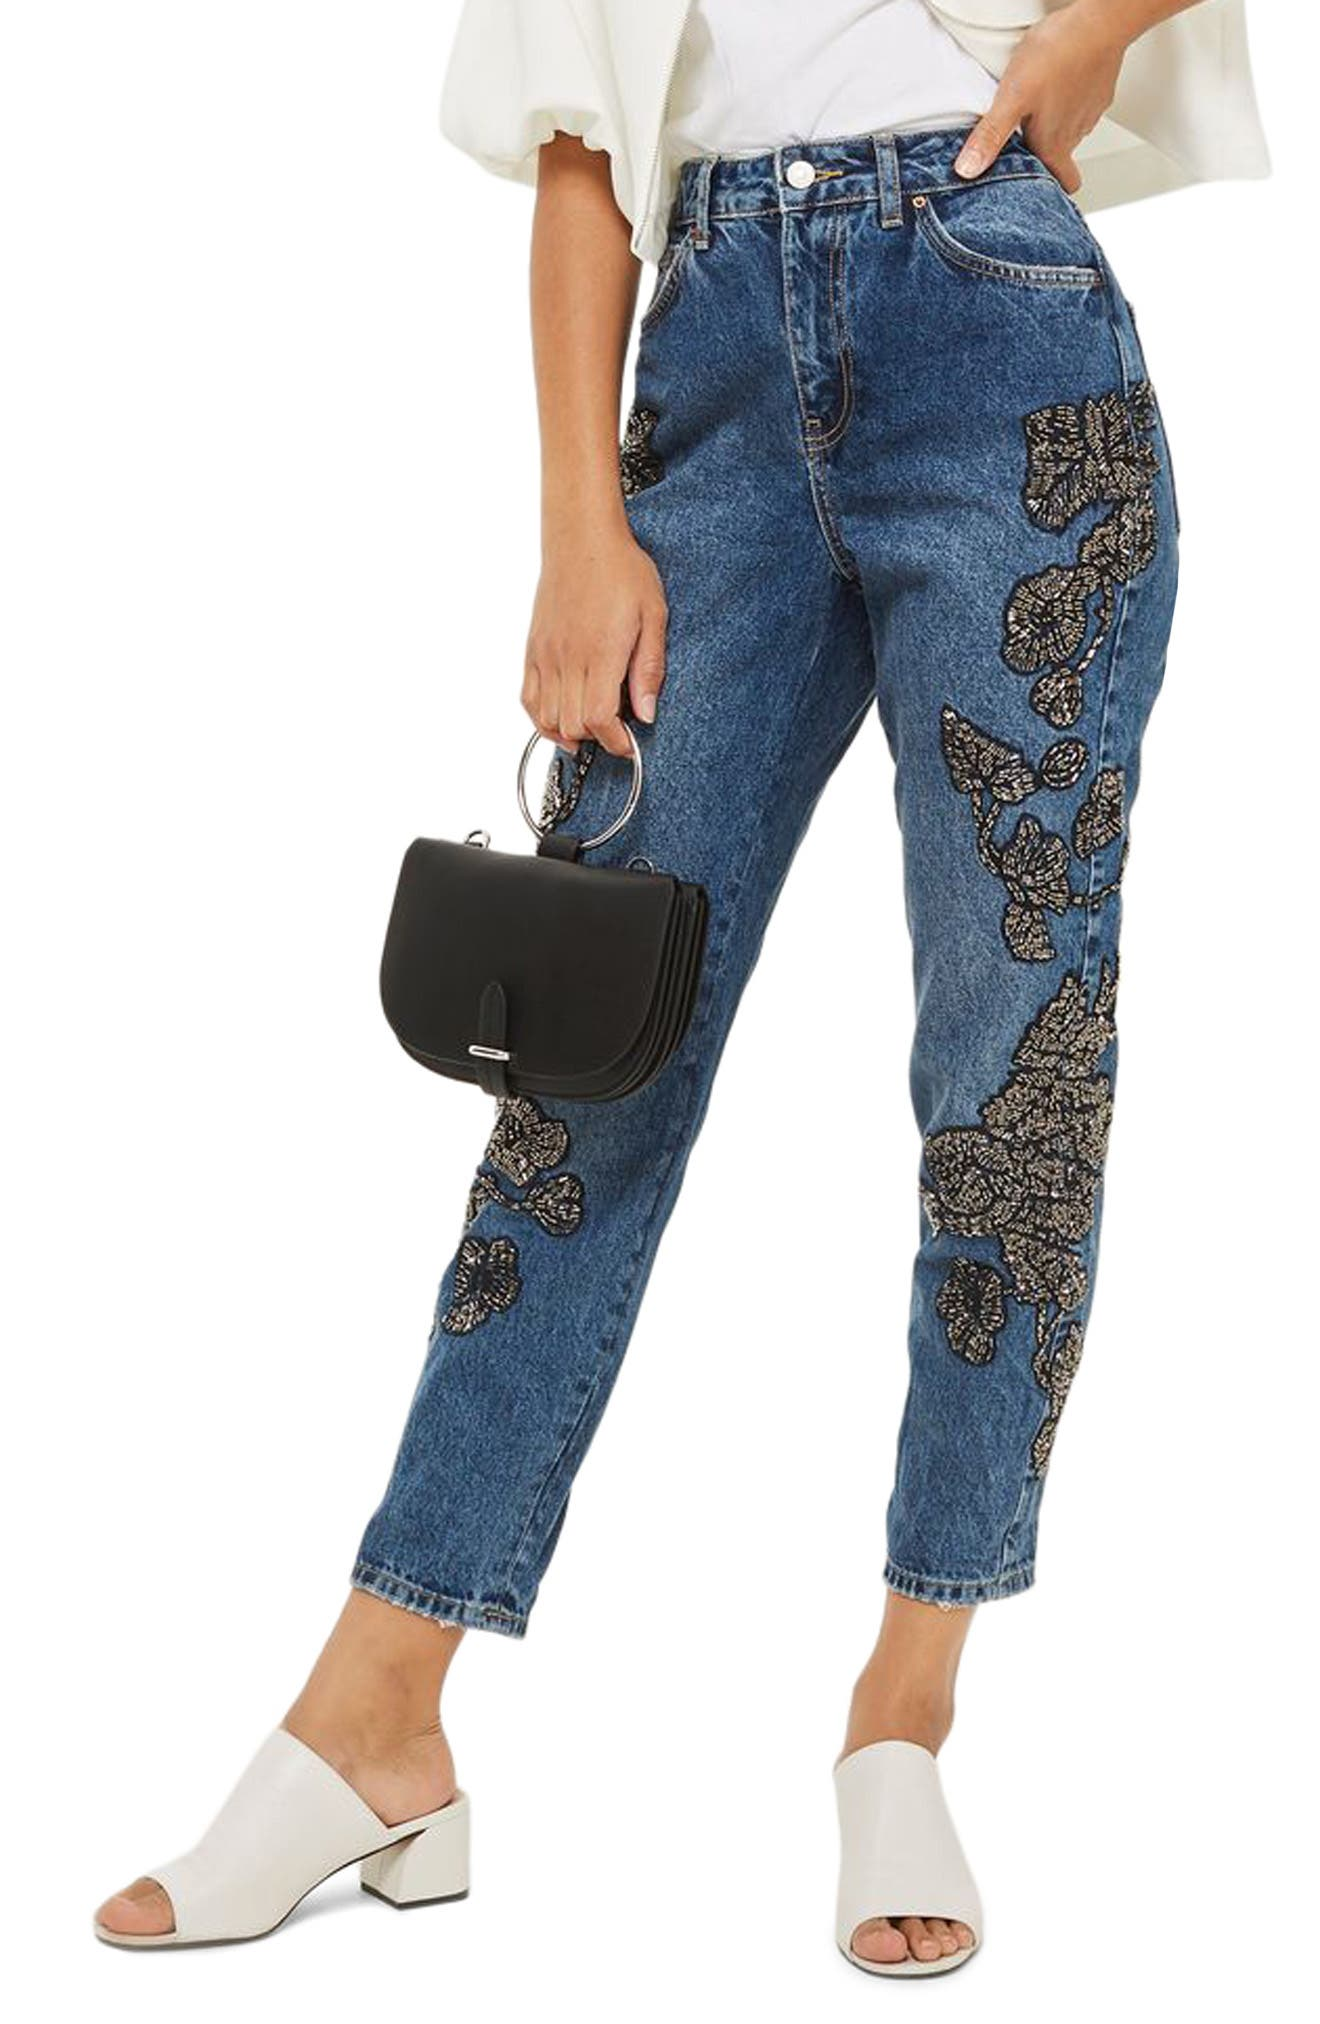 English Flower Embellished Mom Jeans,                             Main thumbnail 1, color,                             Mid Denim Multi